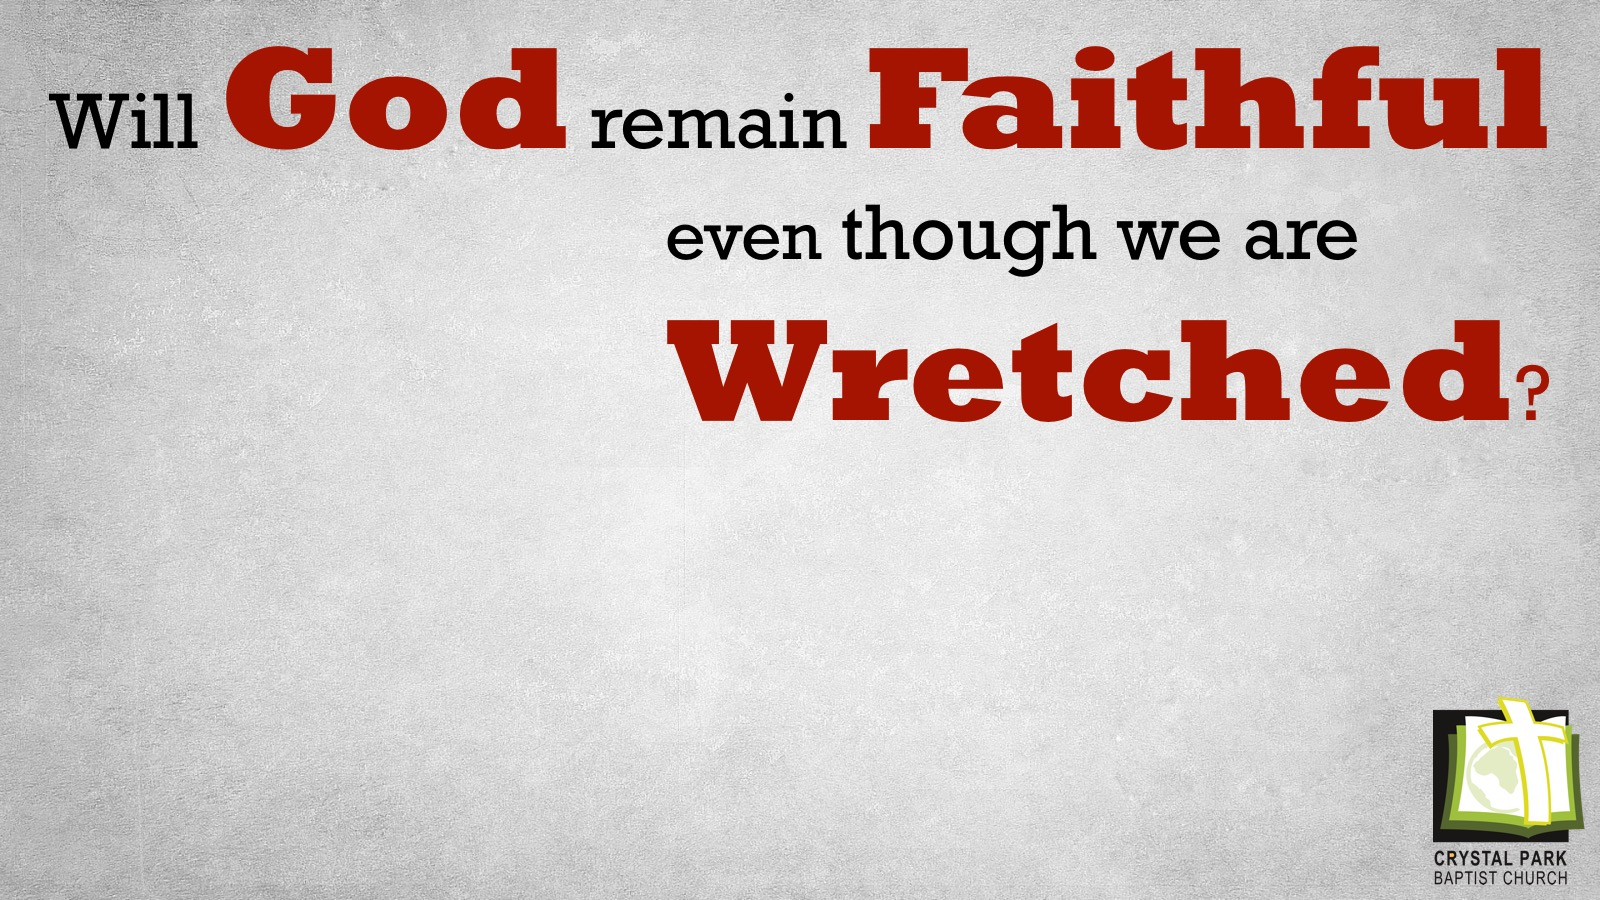 Will God remain Faithful even though we are Wretched?